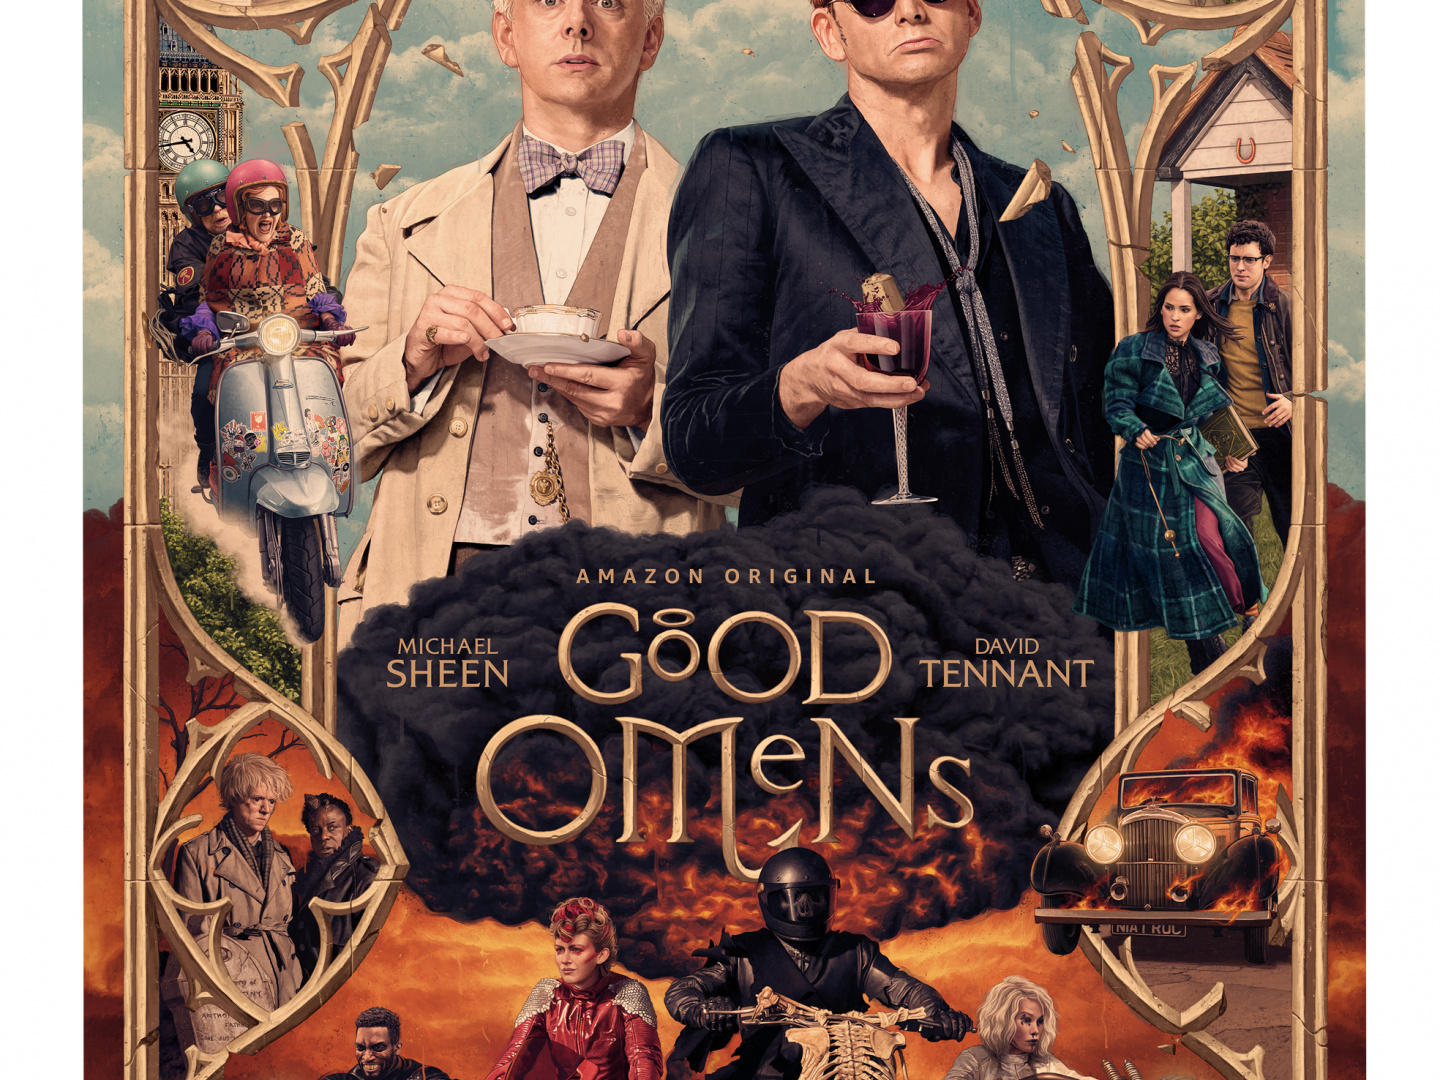 Good Omens SXSW Illustrated Poster Thumbnail